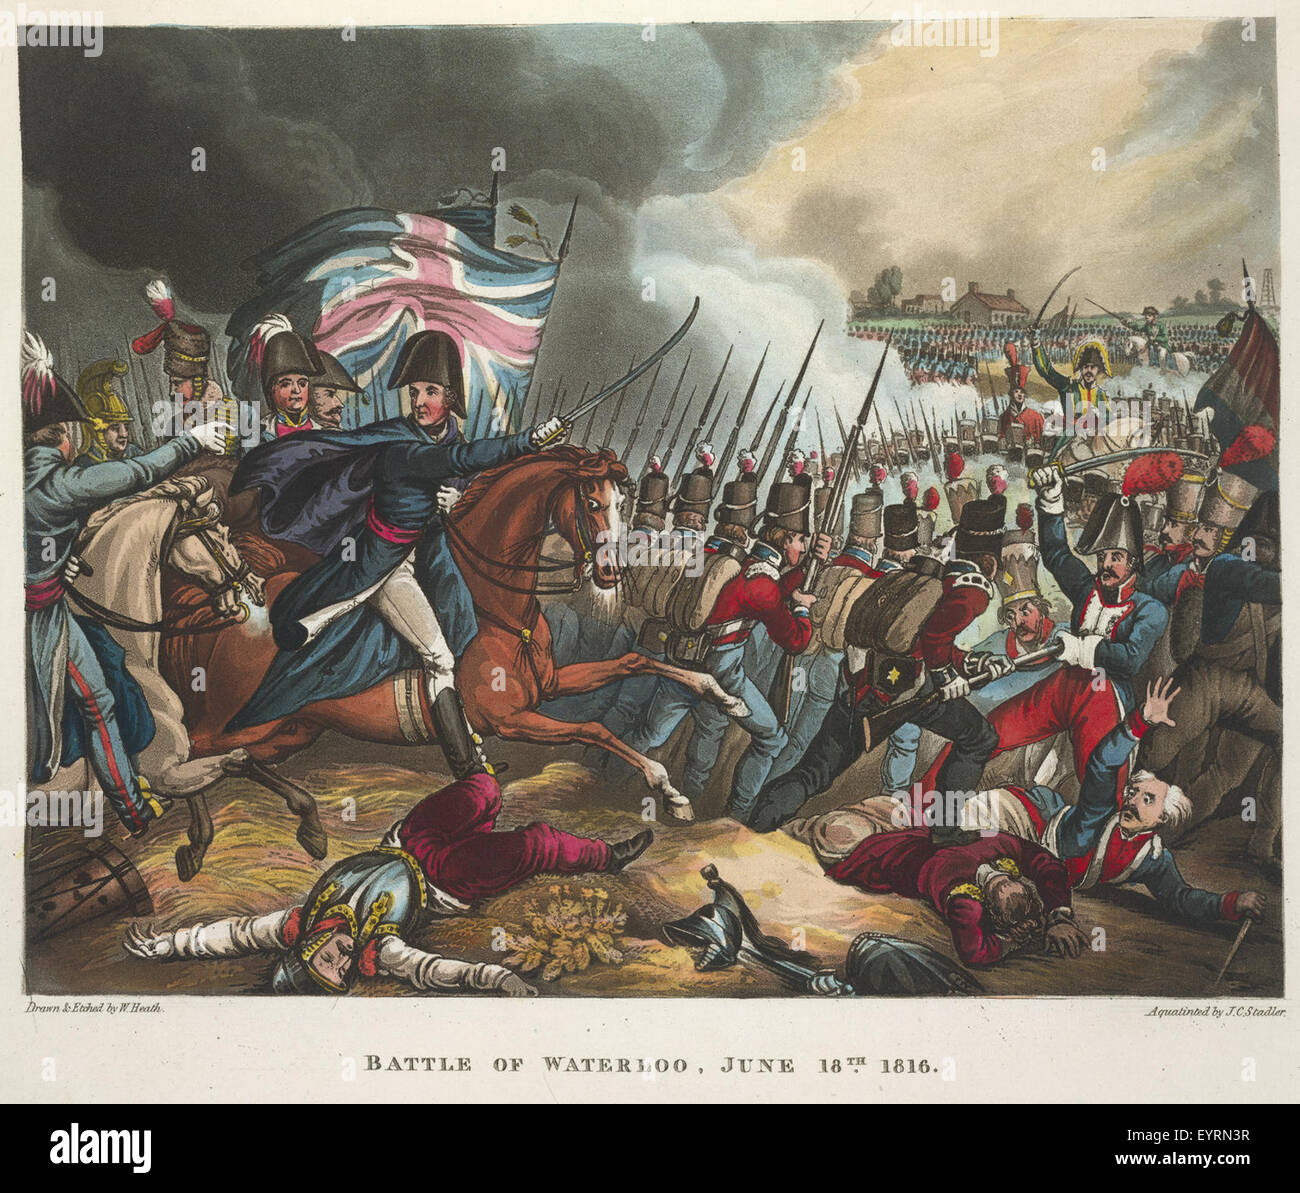 The wars of Wellington, a narrative poem. - caption: 'The Battle of Waterloo, June 18th 1815. Depicting Arthur - Stock Image